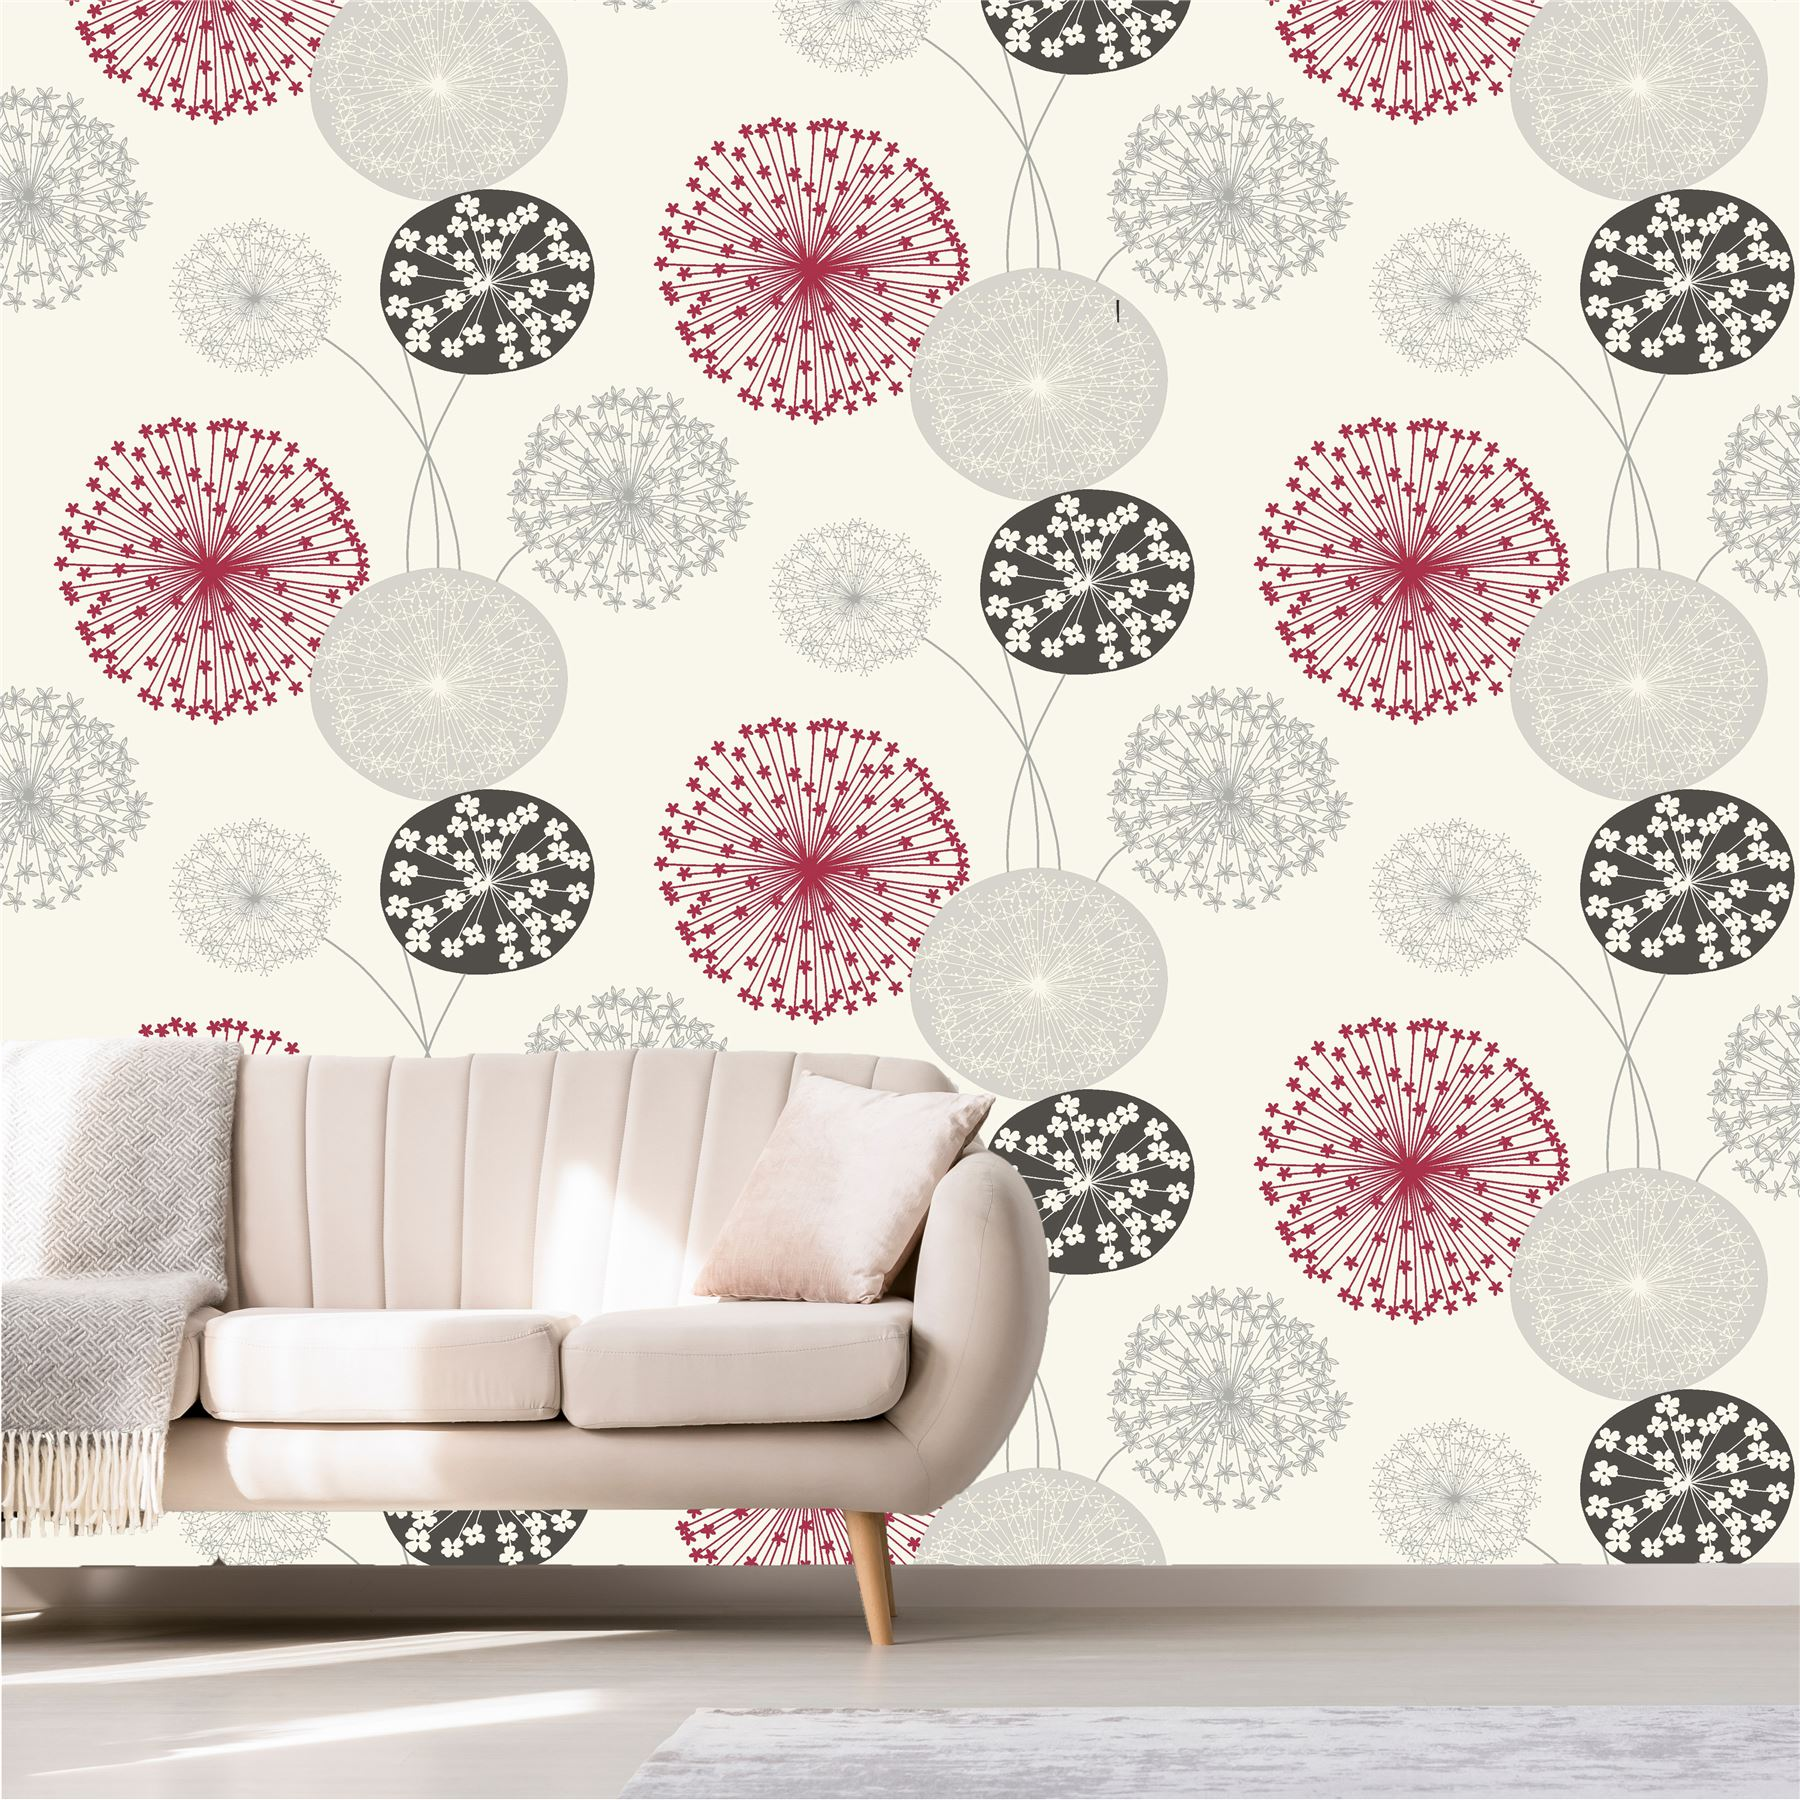 b&q lucienne grey & red floral